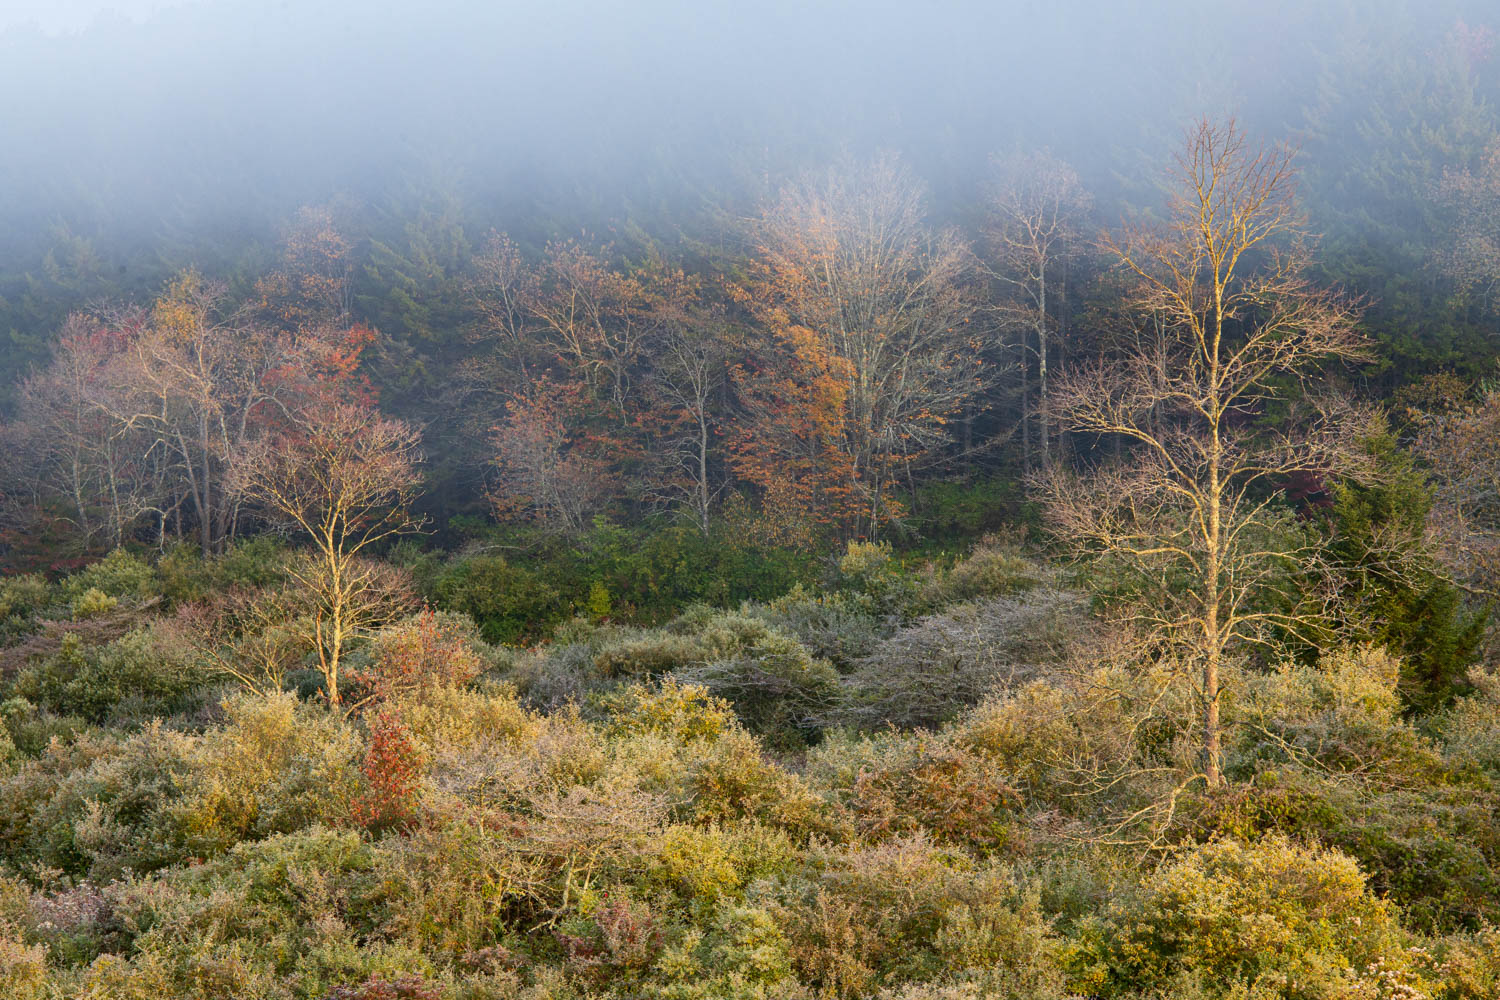 Foggy forest surrounding Spruce Knob Lake in the Monongahela National Forest of West Virginia.